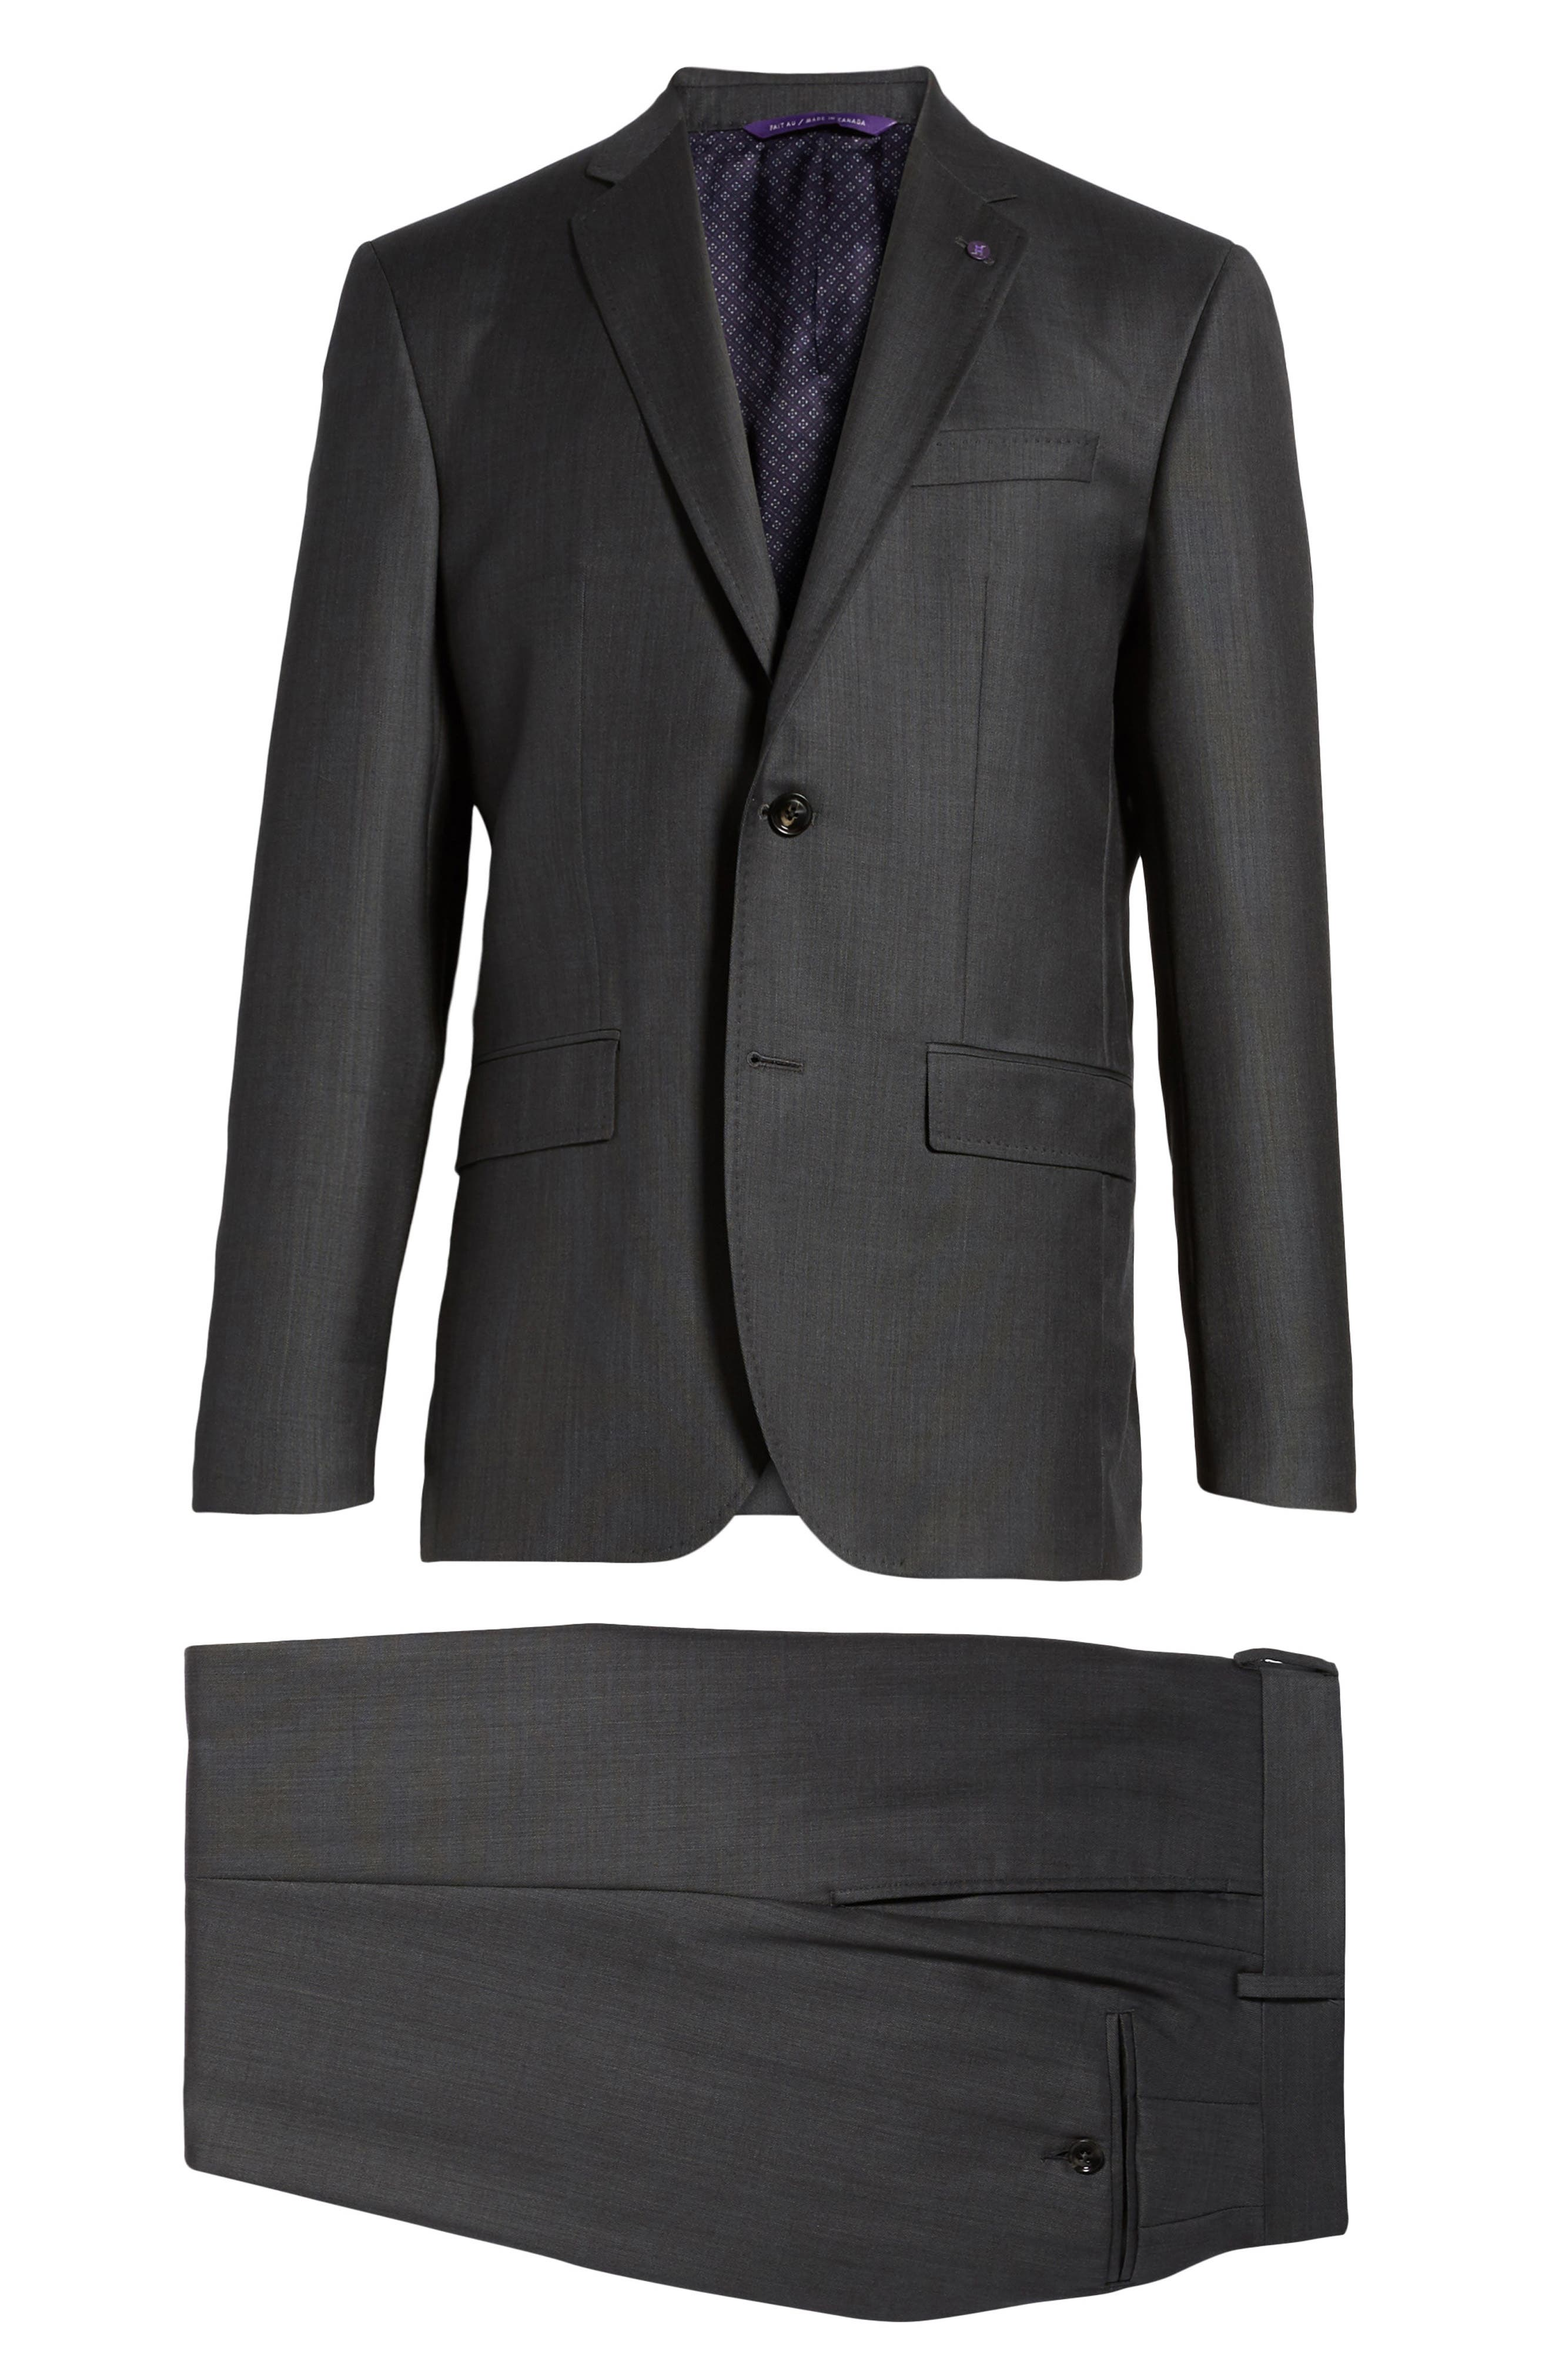 'Jay' Trim Fit Solid Wool Suit,                             Alternate thumbnail 7, color,                             CHARCOAL